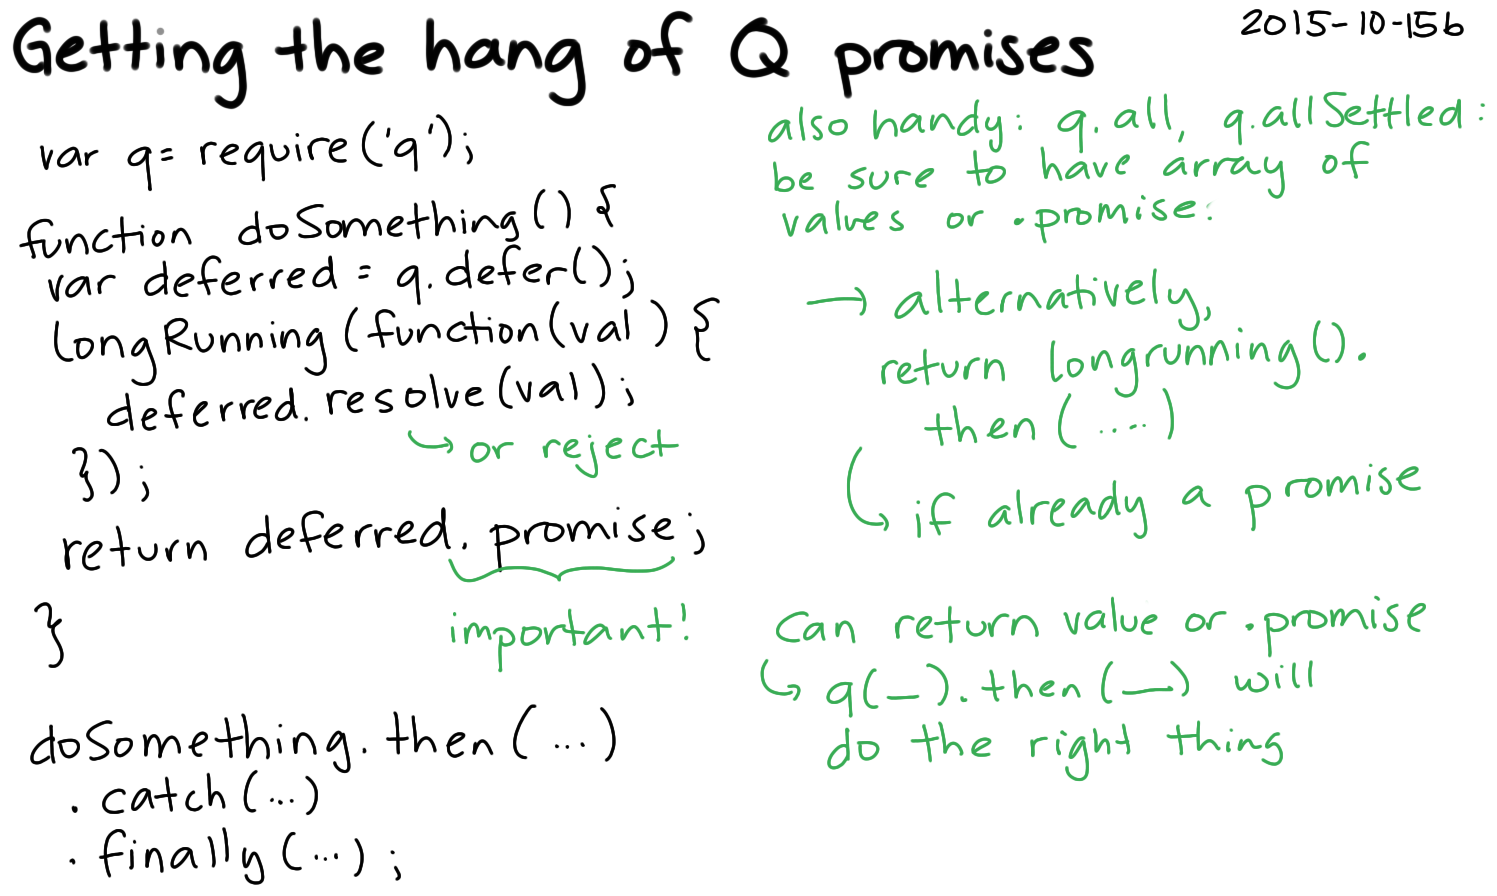 2015-10-15b Getting the hang of Q promises -- index card #javascript #programming #async.png